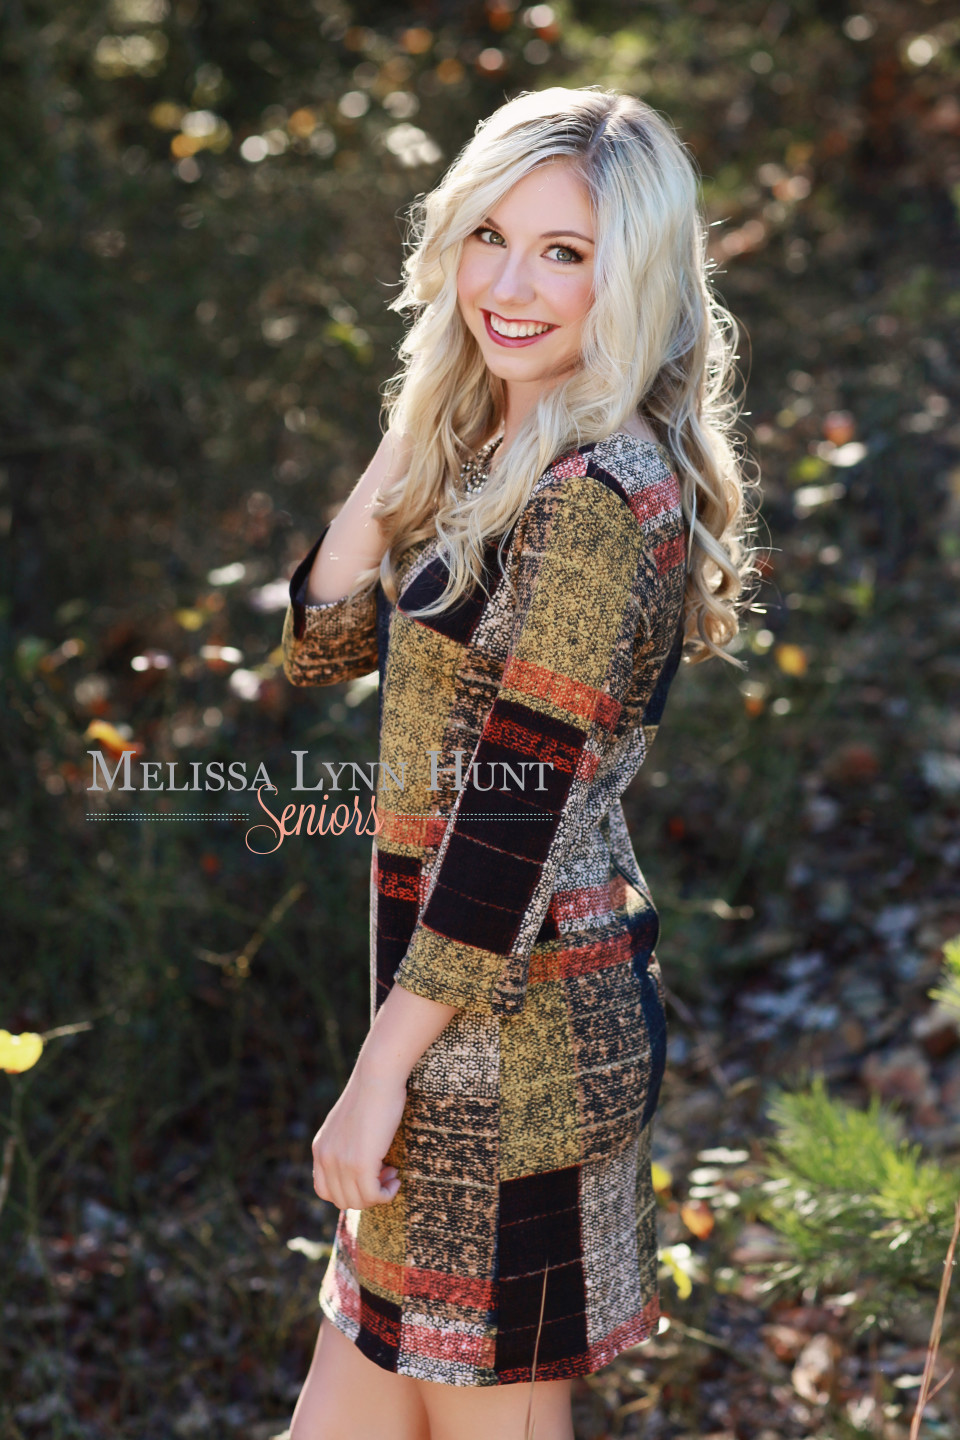 charlotte_senior_portrait_photographer-7